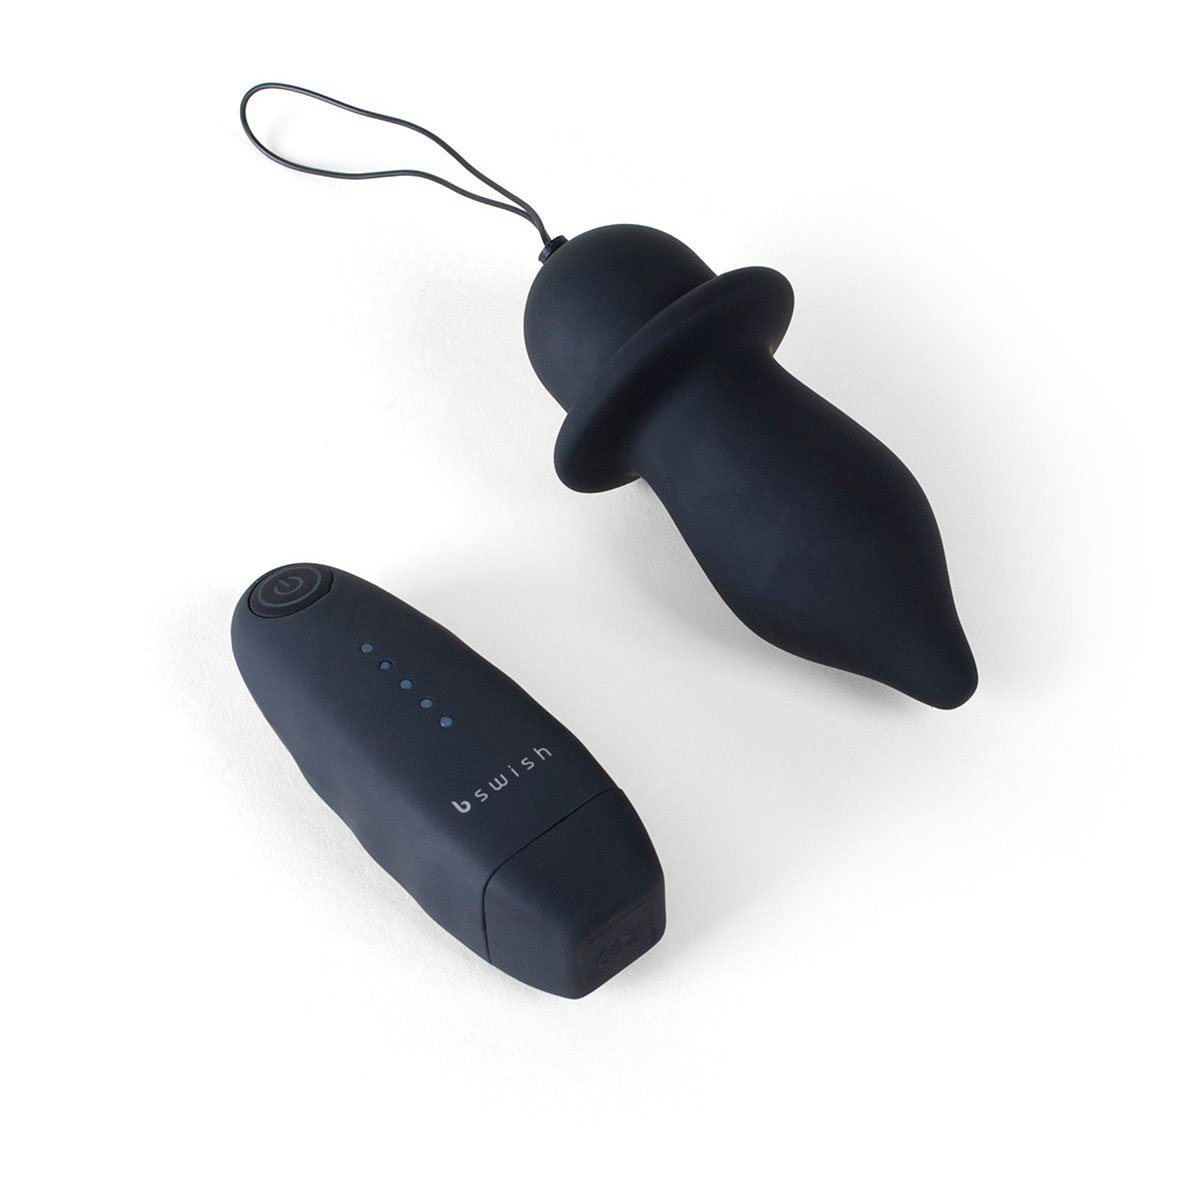 B Swish Bfilled Classic Remote Plug Butt Plugs B Swish